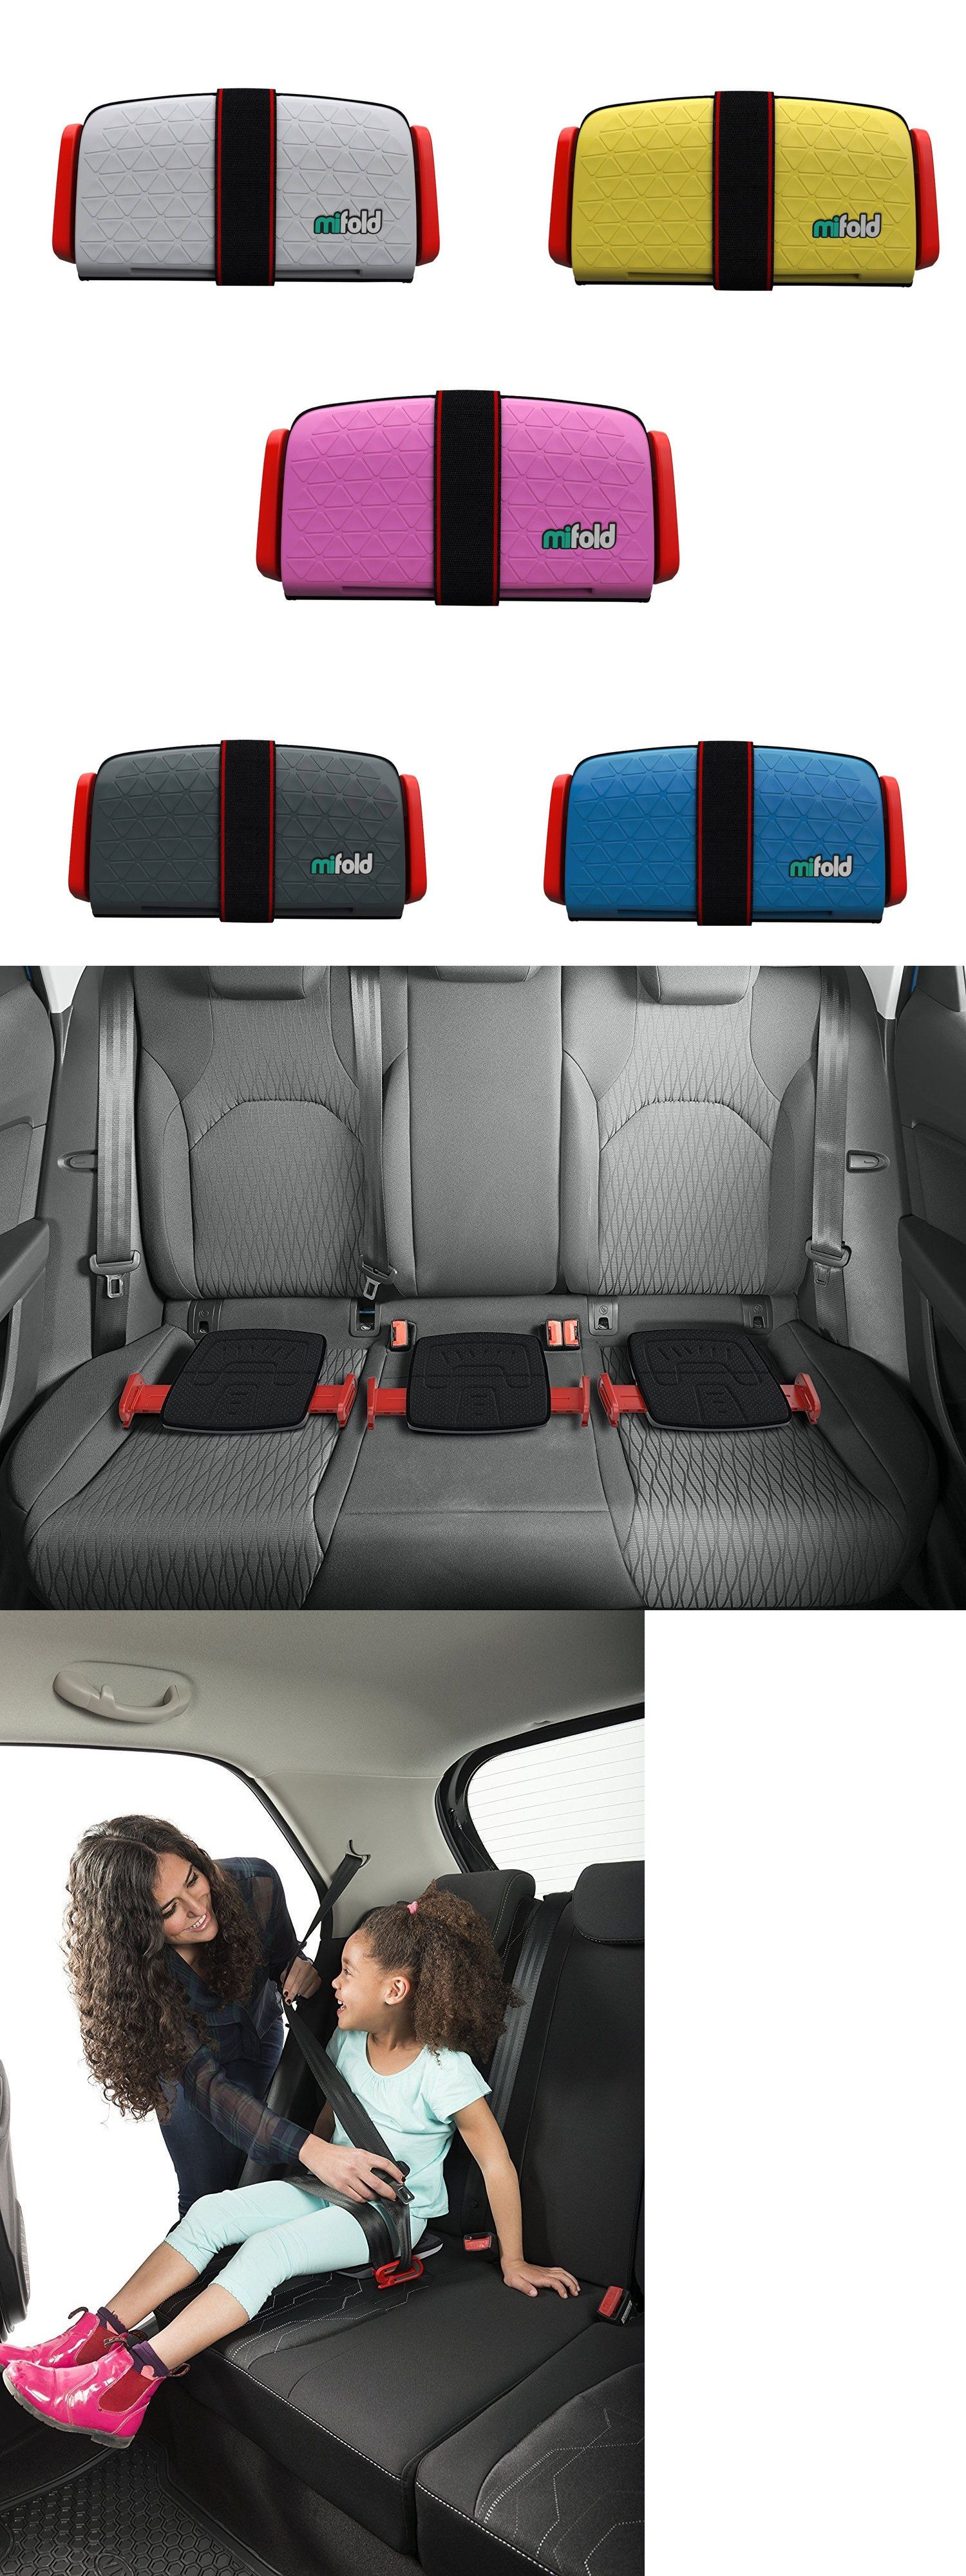 Booster To 80lbs 66694 Mifold Grab N Go Small Portable Child Car Seat Mf01 BUY IT NOW ONLY 3899 On EBay